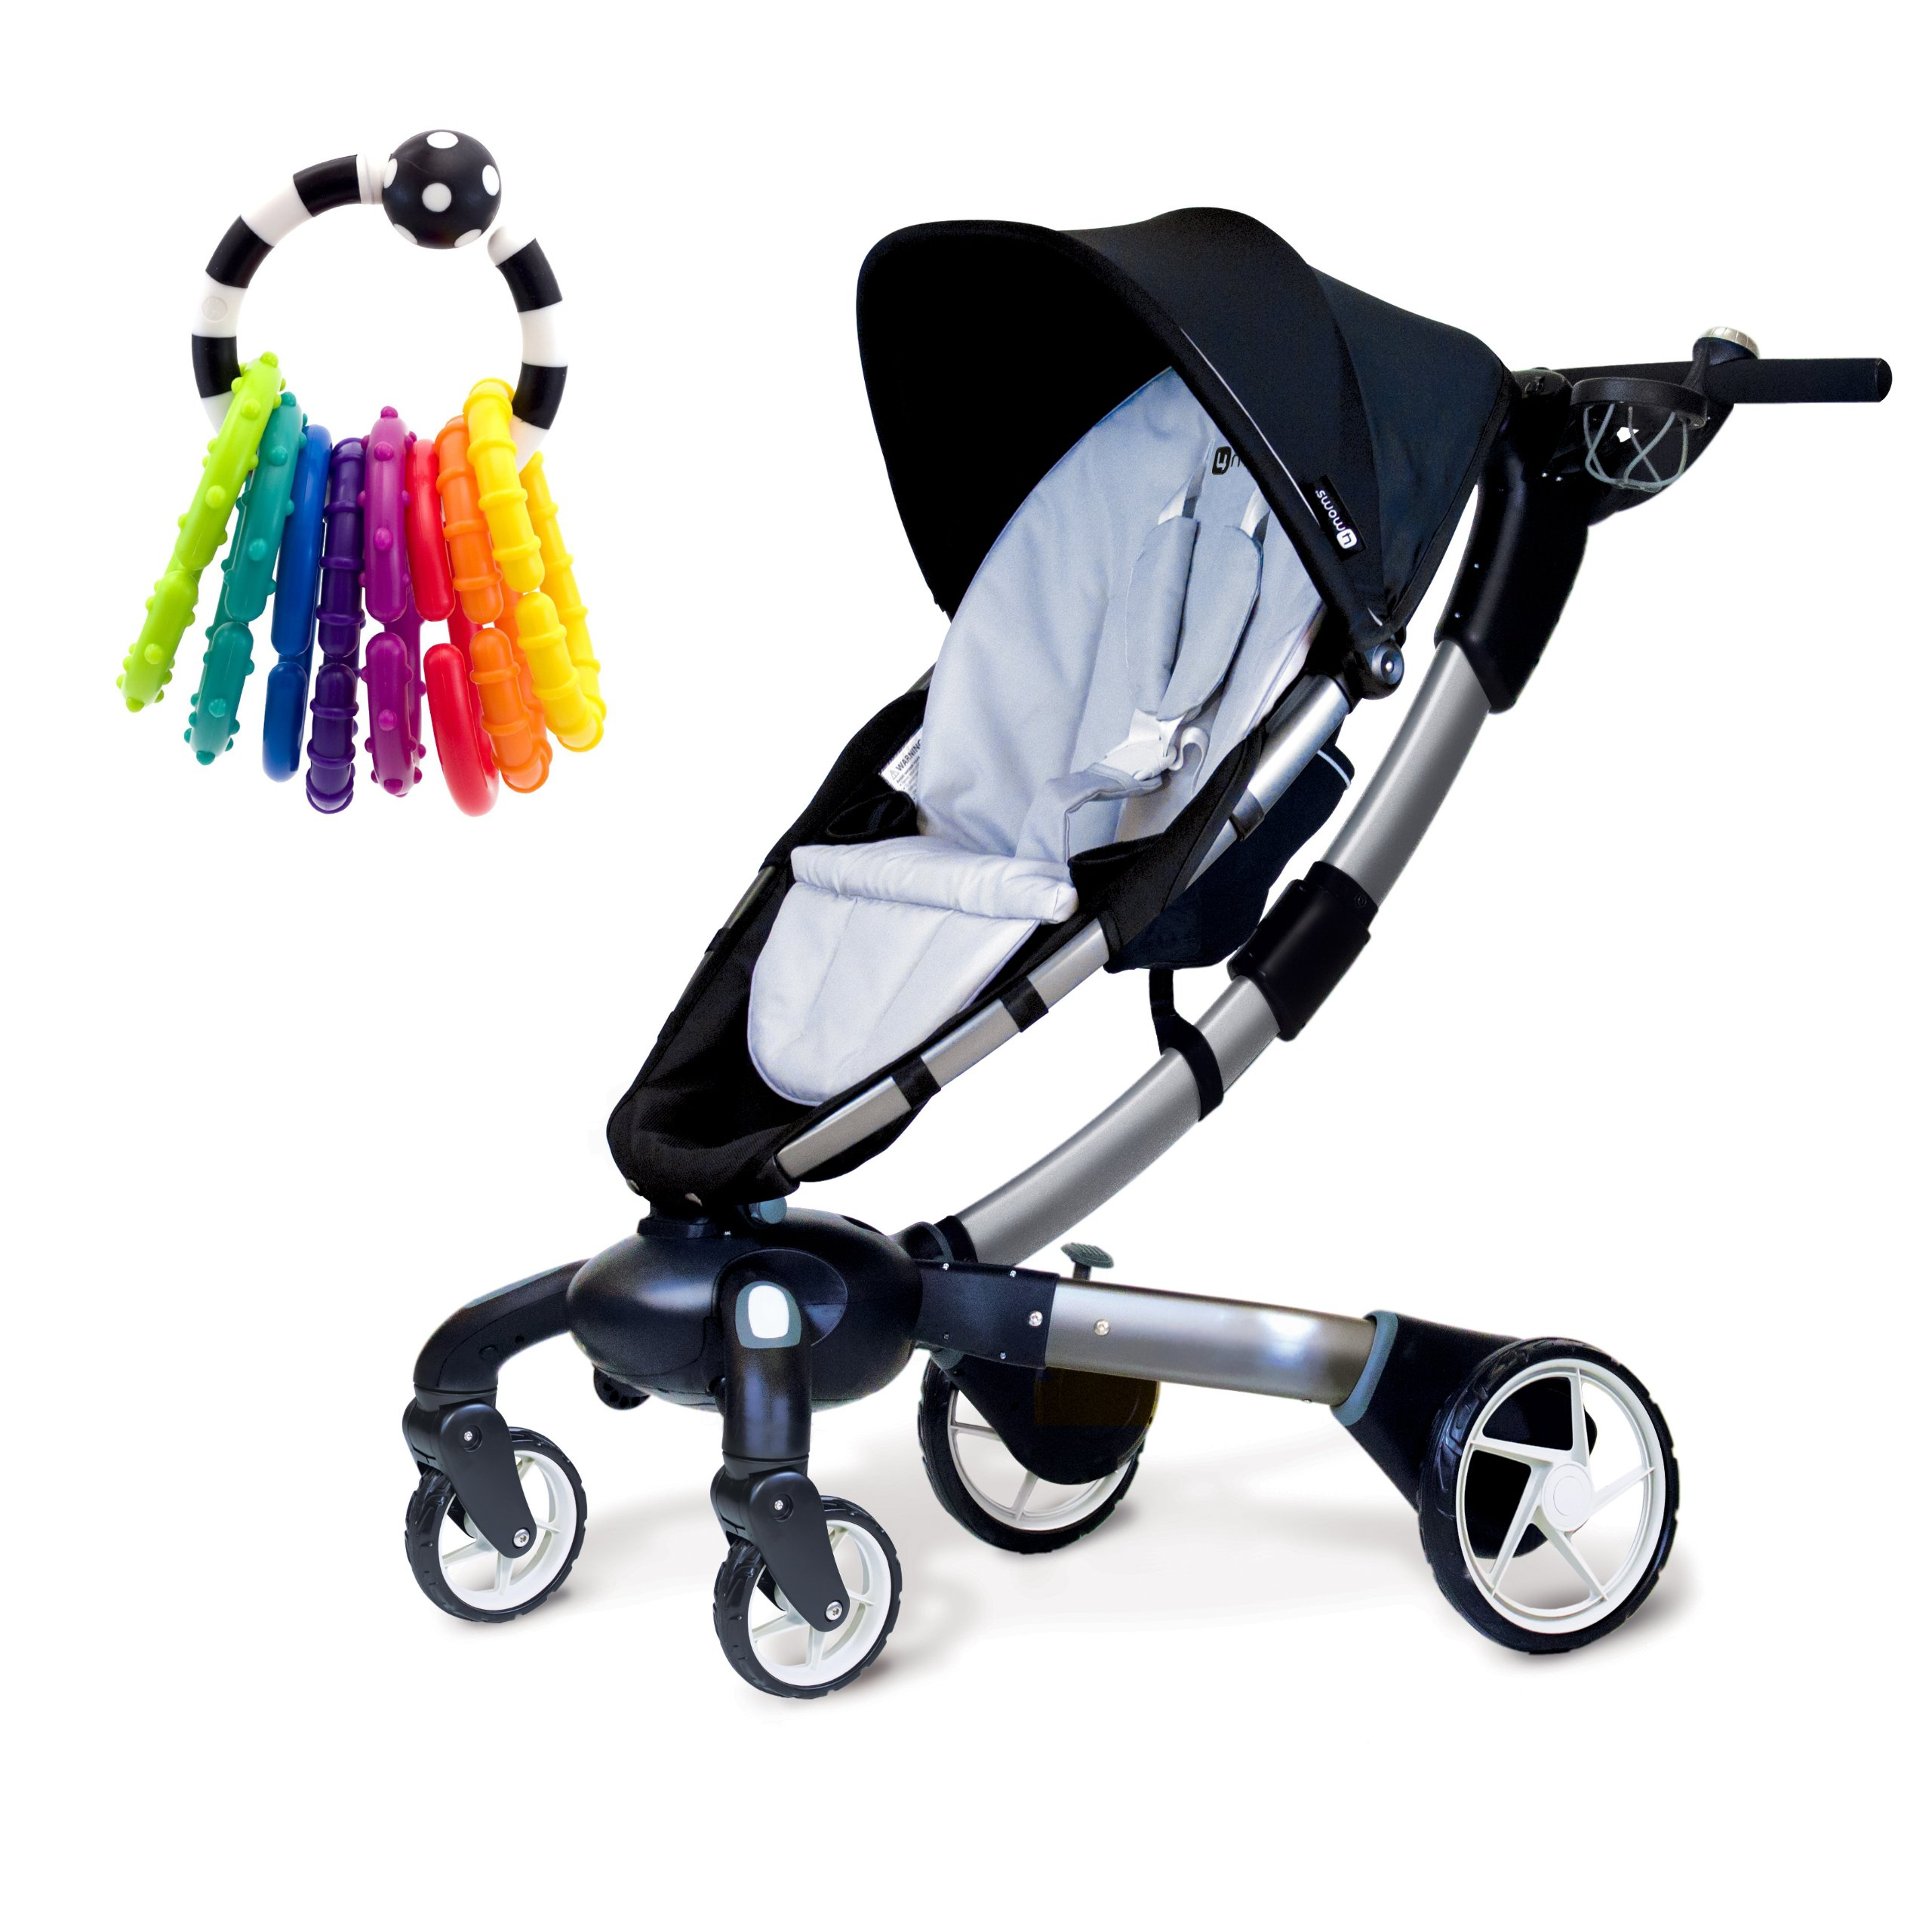 4moms Origami Stroller in Silver with Rattle Toy by 4moms